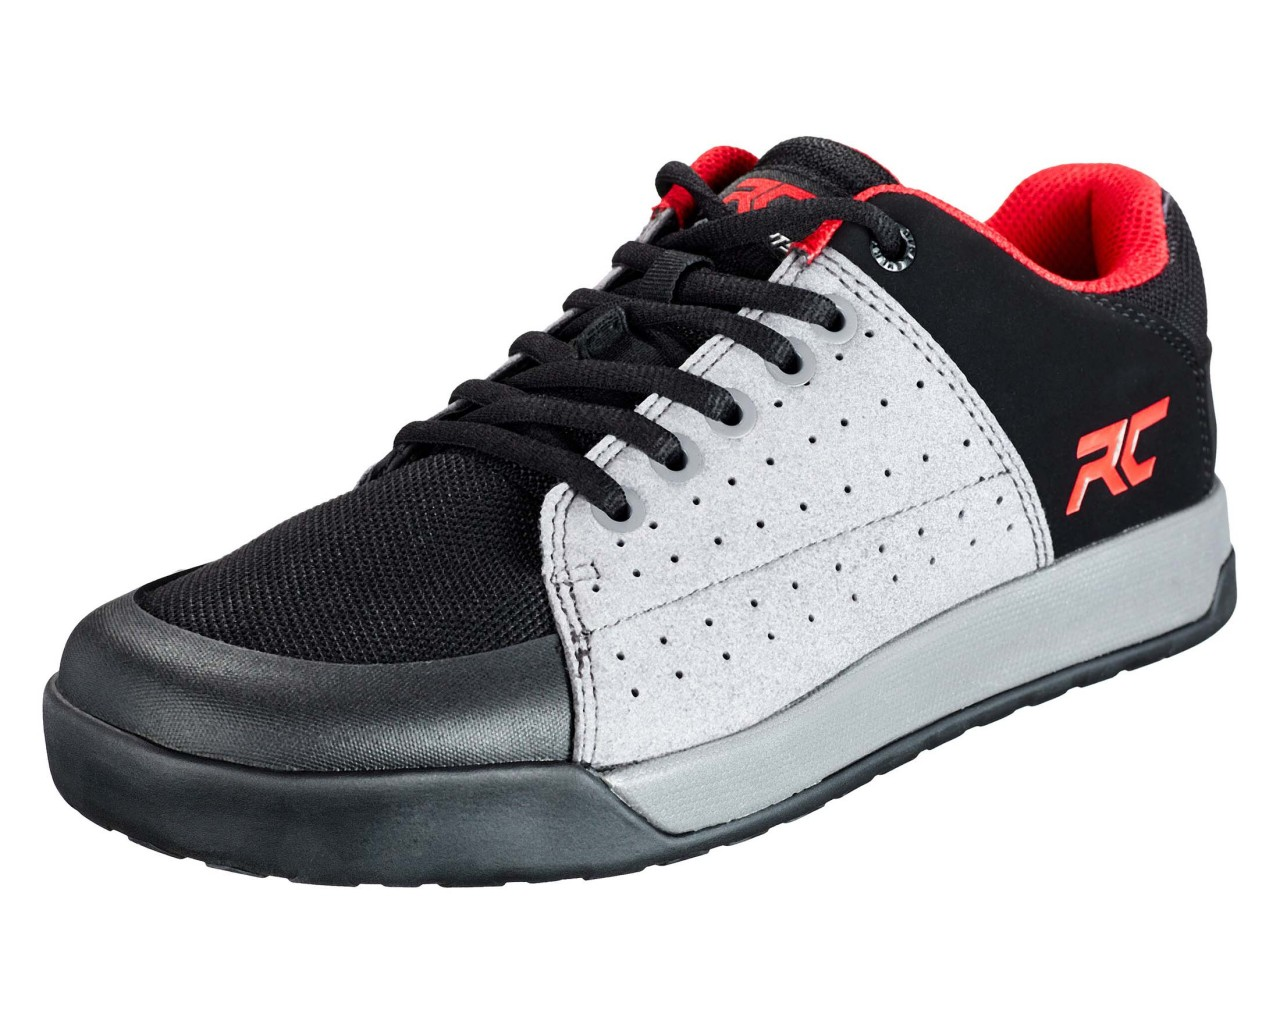 Ride Concepts Livewire MTB-Shoes | charcoal-red